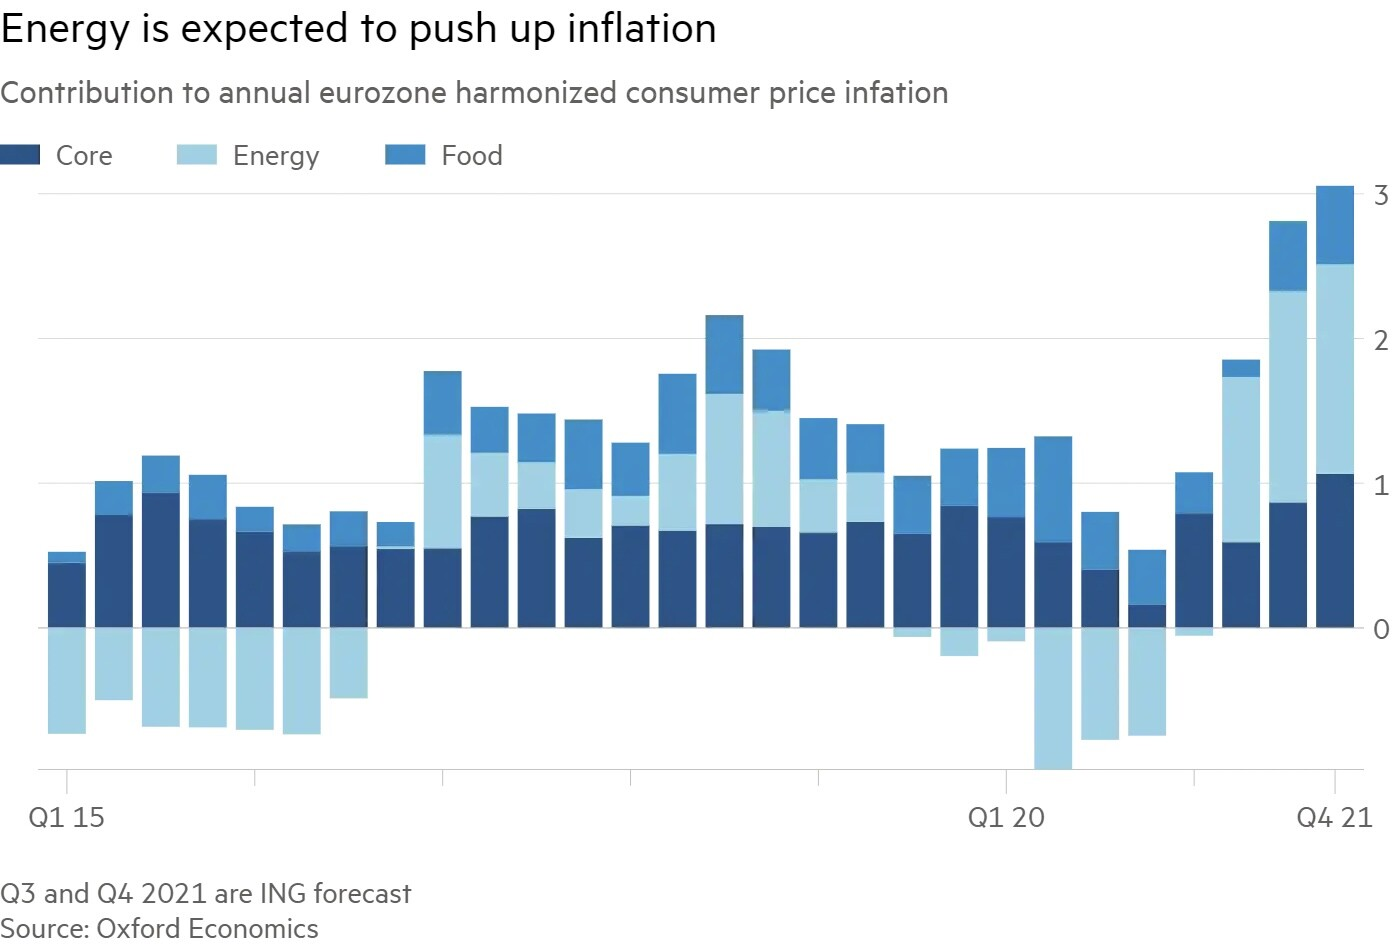 Energy is expected to push up inflation